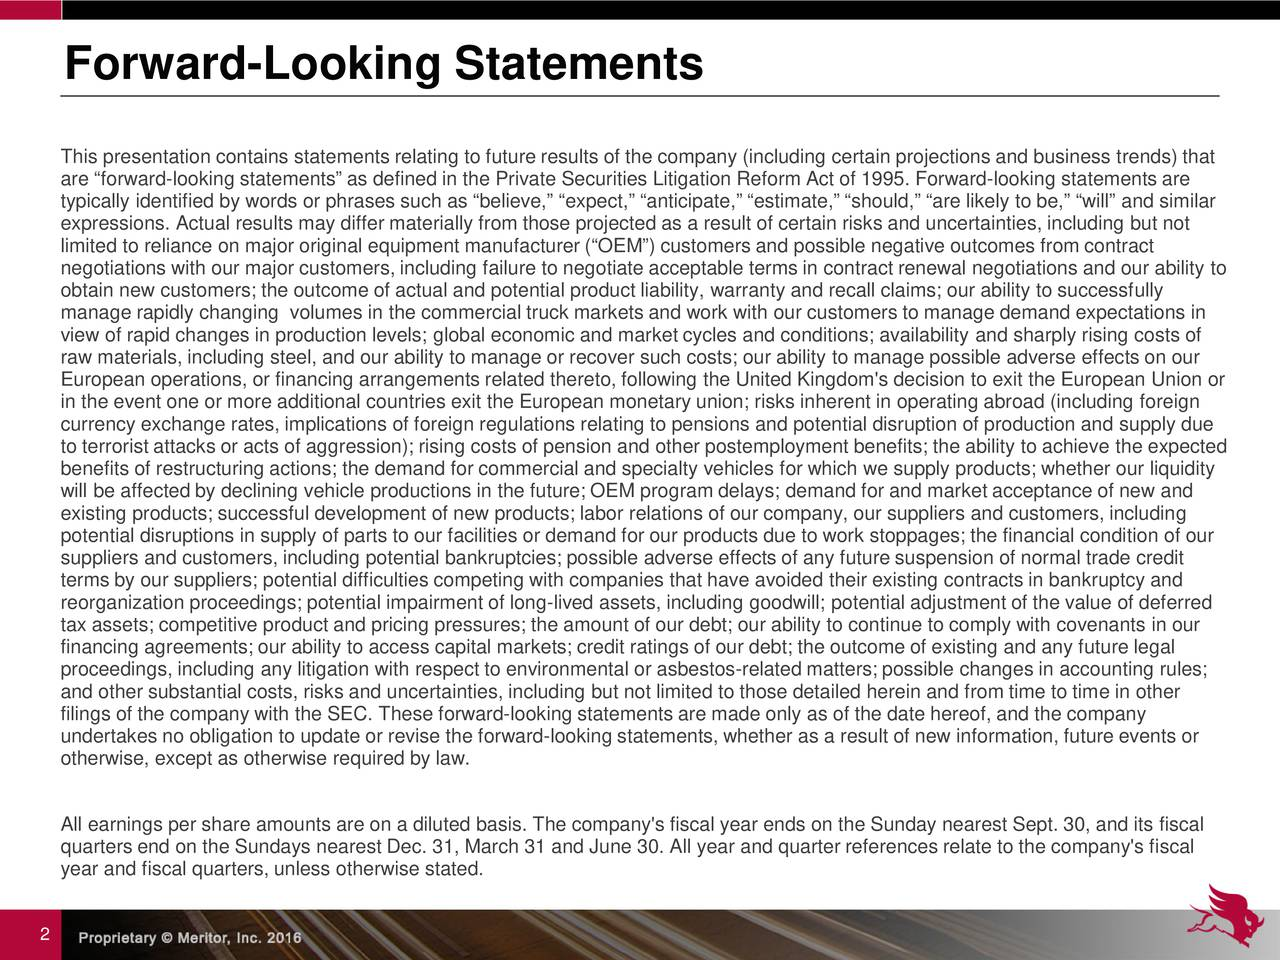 This presentation contains statements relating to future results of the company (including certain projections and businessrtends) that are forward-looking statements as defined in the Private Securities Litigation Reform Act of 1995. Forward-looking statements are typically identified by words or phrases such as believe, expect, anticipate, estimate, should, are likely to be,will and similar expressions. Actual results may differ materially from those projected as a result of certain risks and uncertainties, including but not limited to reliance on major original equipment manufacturer (OEM) customers and possible negative outcomes from contract negotiations with our major customers, including failure to negotiate acceptable terms in contract renewal negotiations and ourability to obtain new customers; the outcome of actual and potential product liability, warranty and recall claims; our ability to successfully manage rapidly changing volumes in the commercial truck markets and work with our customers to manage demand expectations in view of rapid changes in production levels; global economic and market cycles and conditions; availability and sharply risingcosts of raw materials, including steel, and our ability to manage or recover such costs; our ability to manage possible adverse efts on our European operations, or financing arrangements related thereto, following the United Kingdom's decision to exit the EuropeanUnion or in the event one or more additional countries exit the European monetary union; risks inherent in operating abroad (includingforeign currency exchange rates, implications of foreign regulations relating to pensions and potential disruption of production andsupply due to terrorist attacks or acts of aggression); rising costs of pension and other postemployment benefits; the ability to e the expected benefits of restructuring actions; the demand for commercial and specialty vehicles for which we supply products; whether ouliquidity will be affect